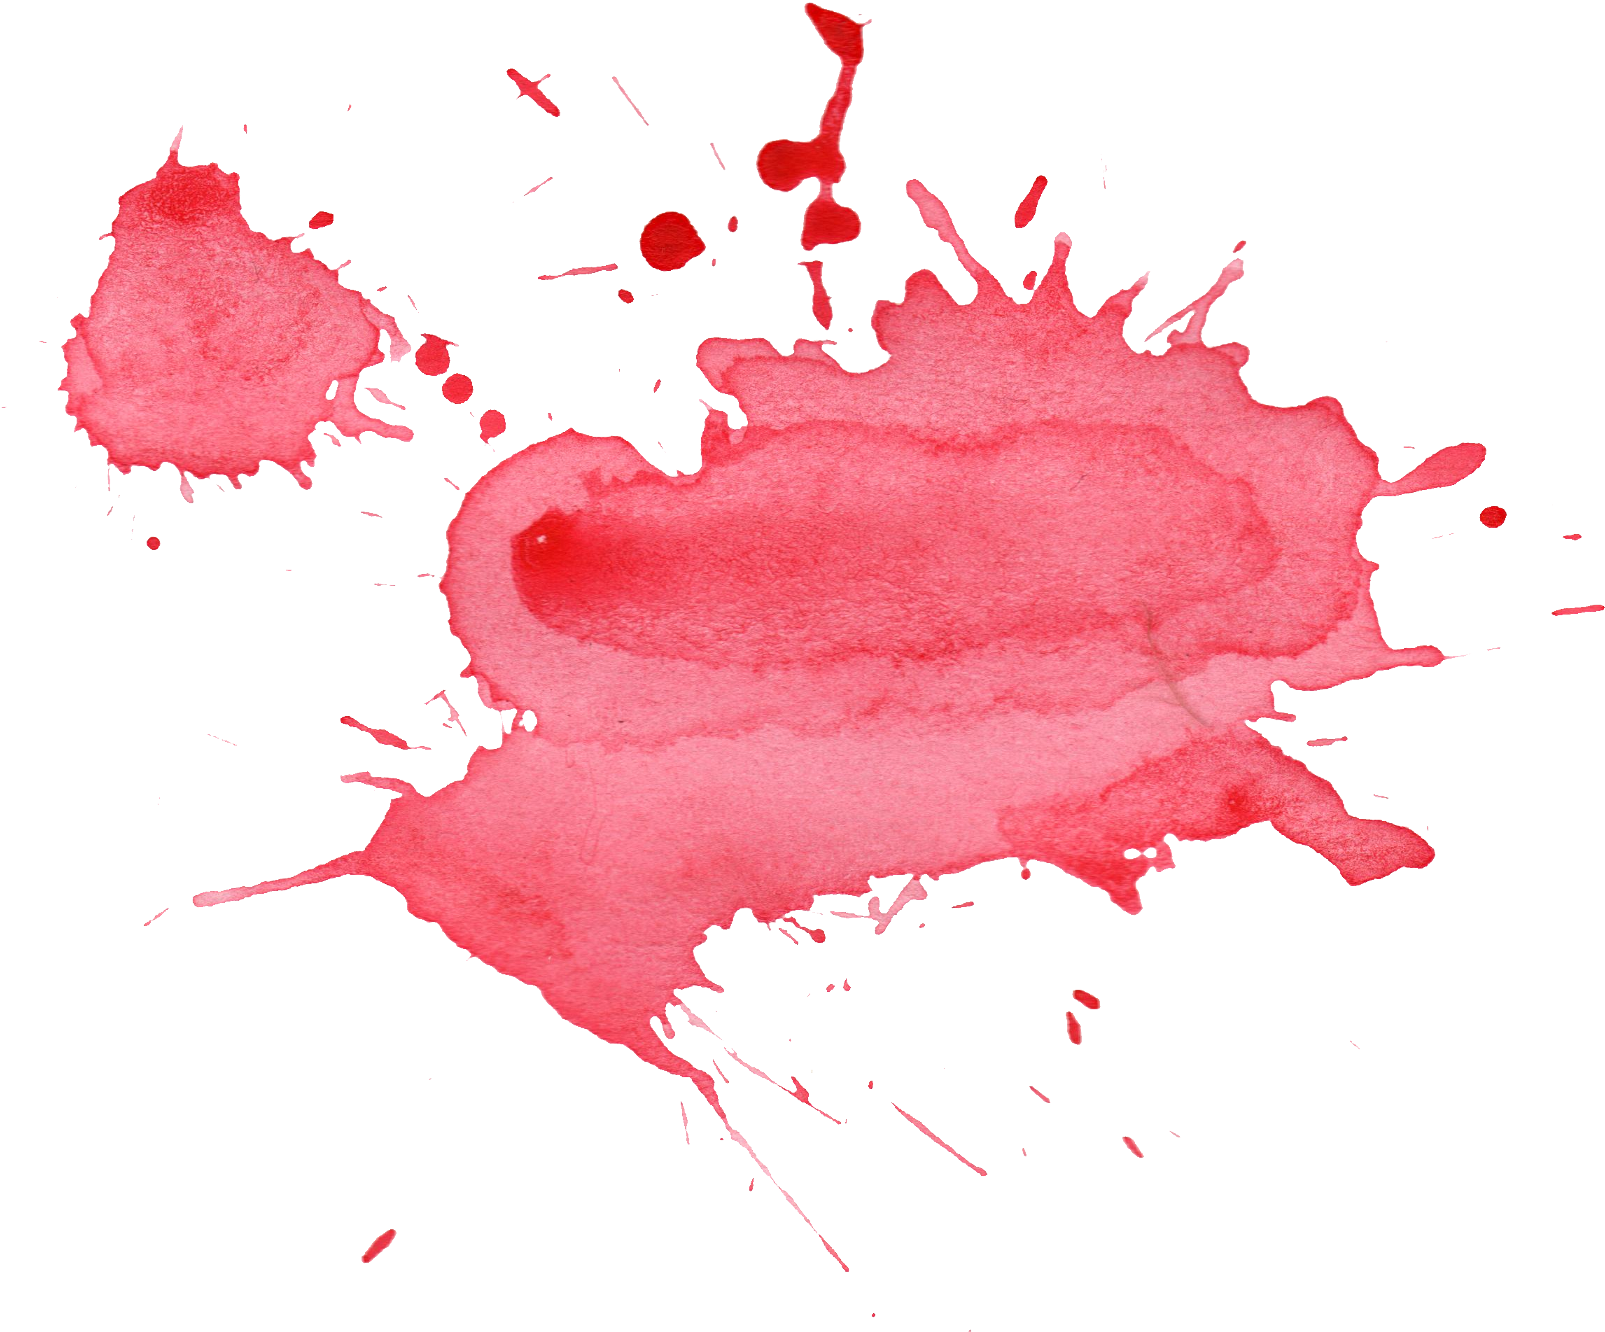 Watercolor stain png. Download free red image